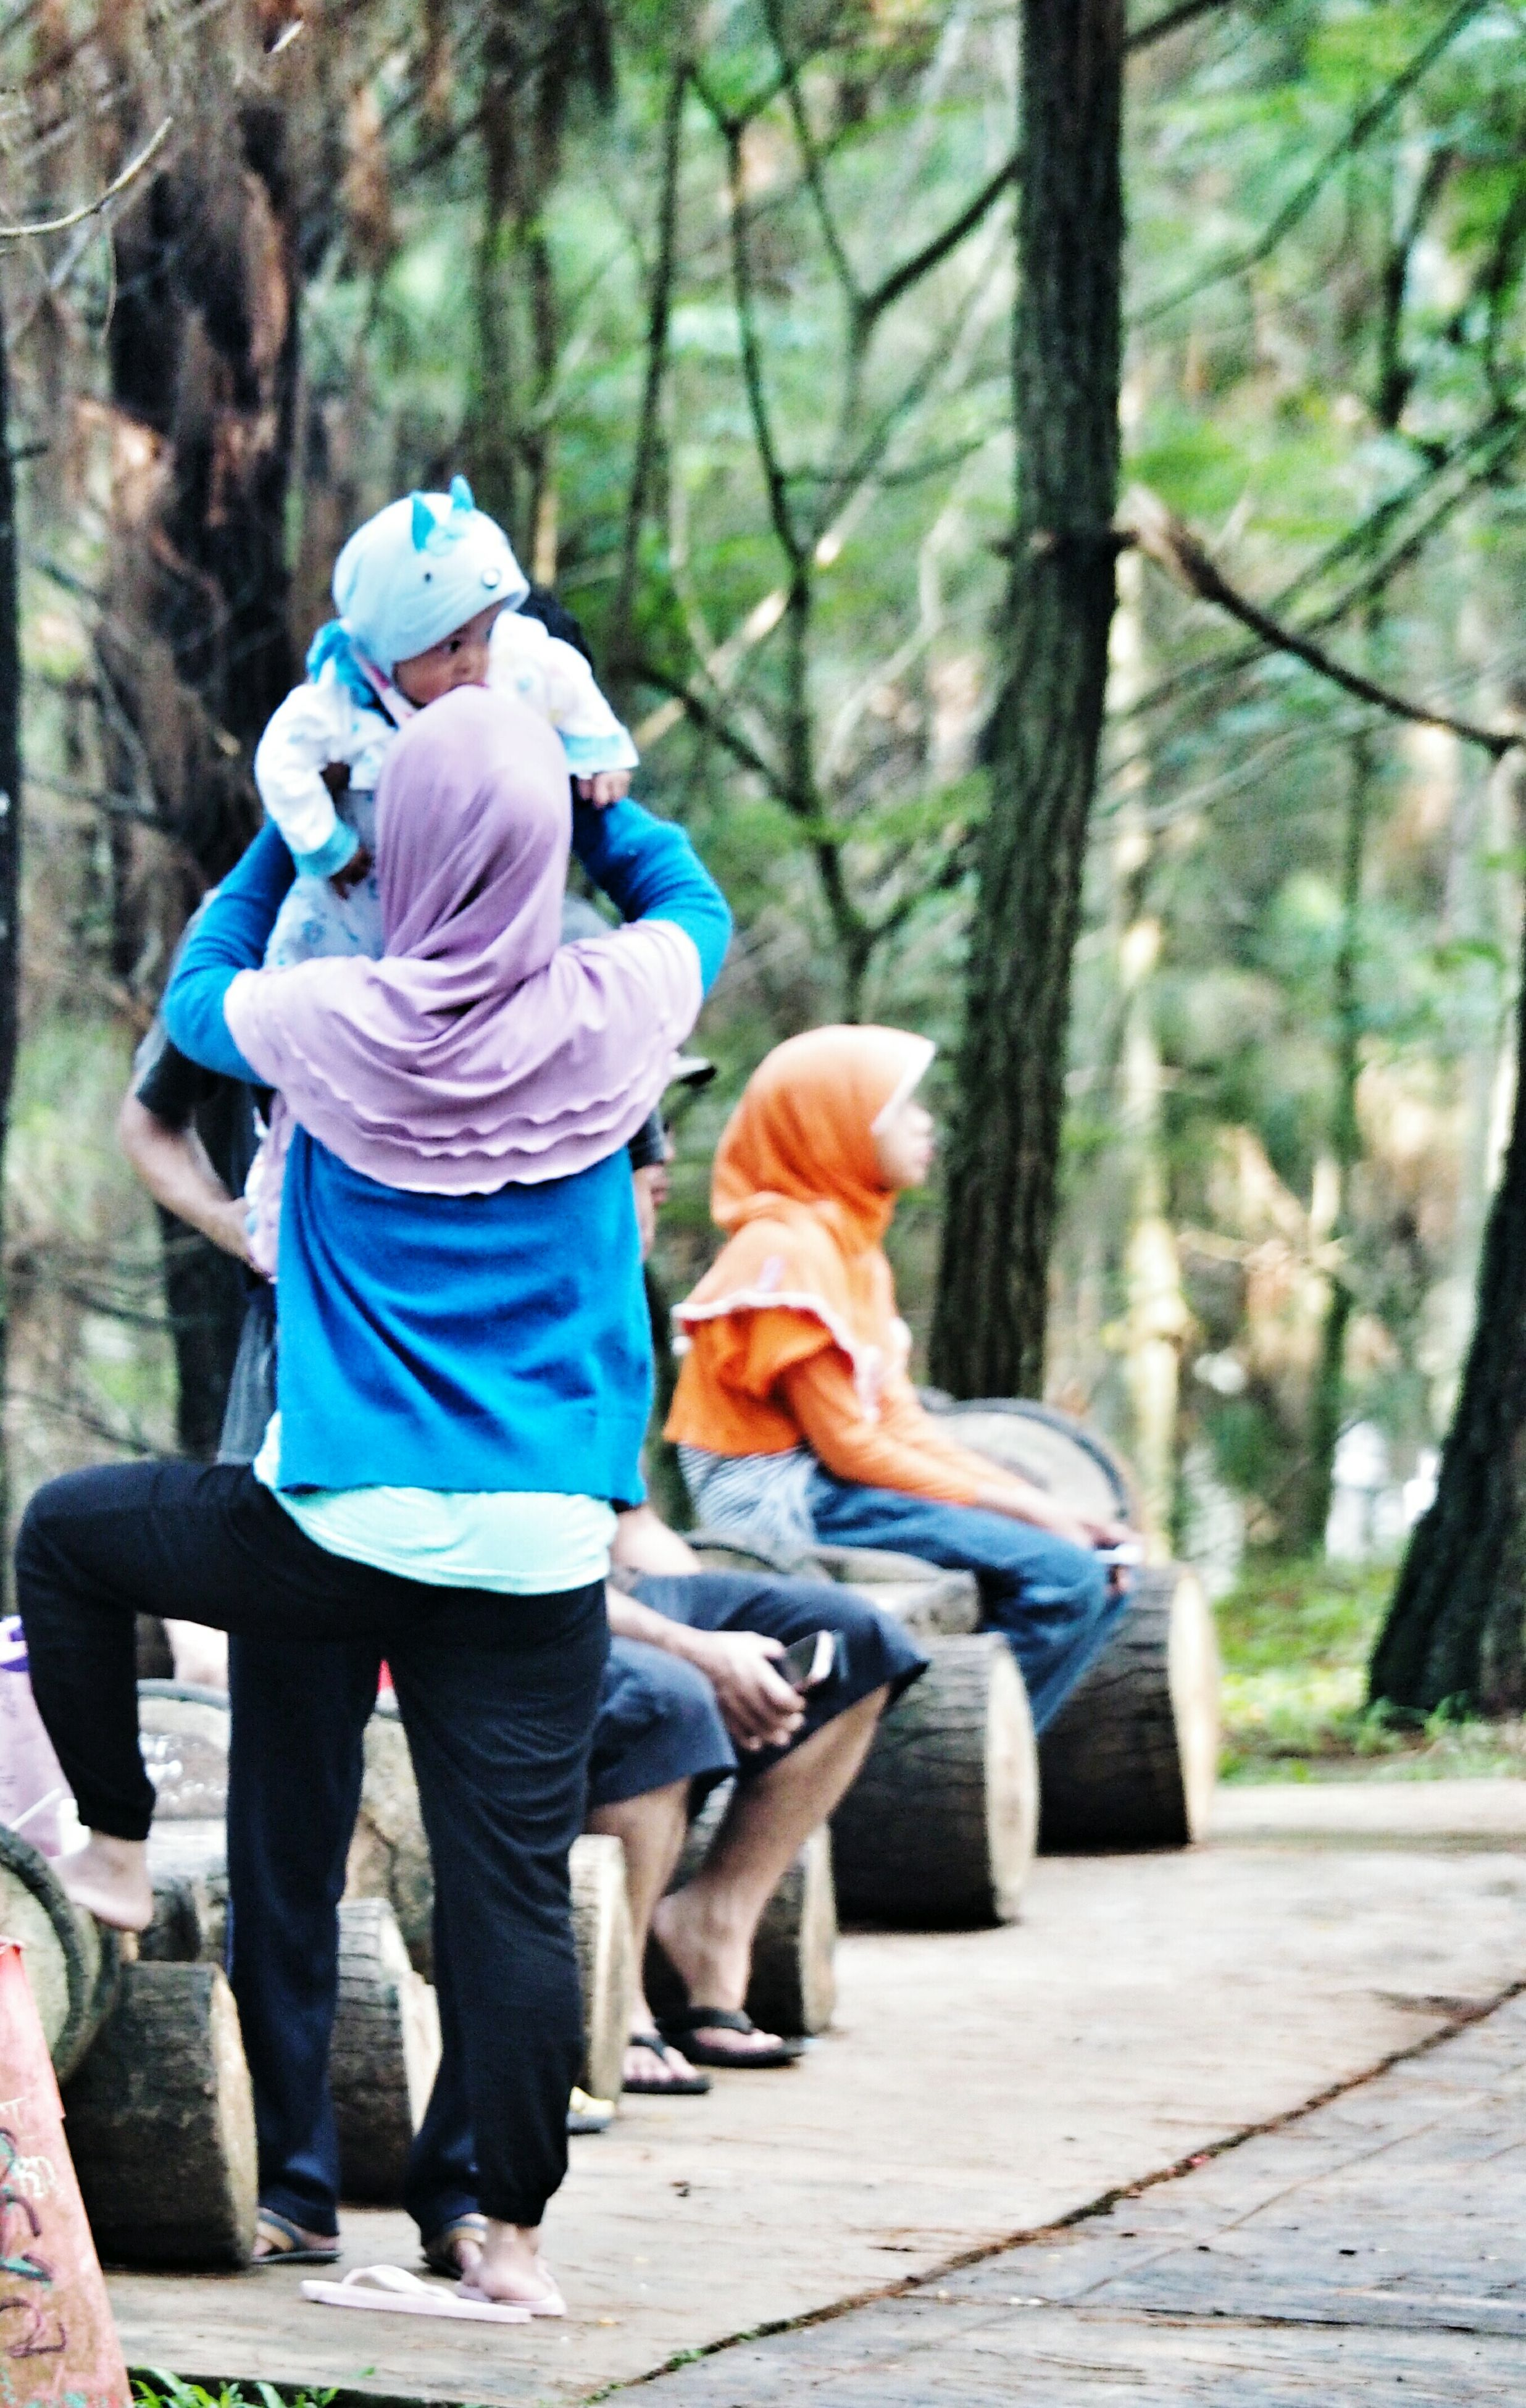 lifestyles, leisure activity, focus on foreground, rear view, tree, childhood, casual clothing, full length, girls, togetherness, boys, person, men, park - man made space, elementary age, sitting, bonding